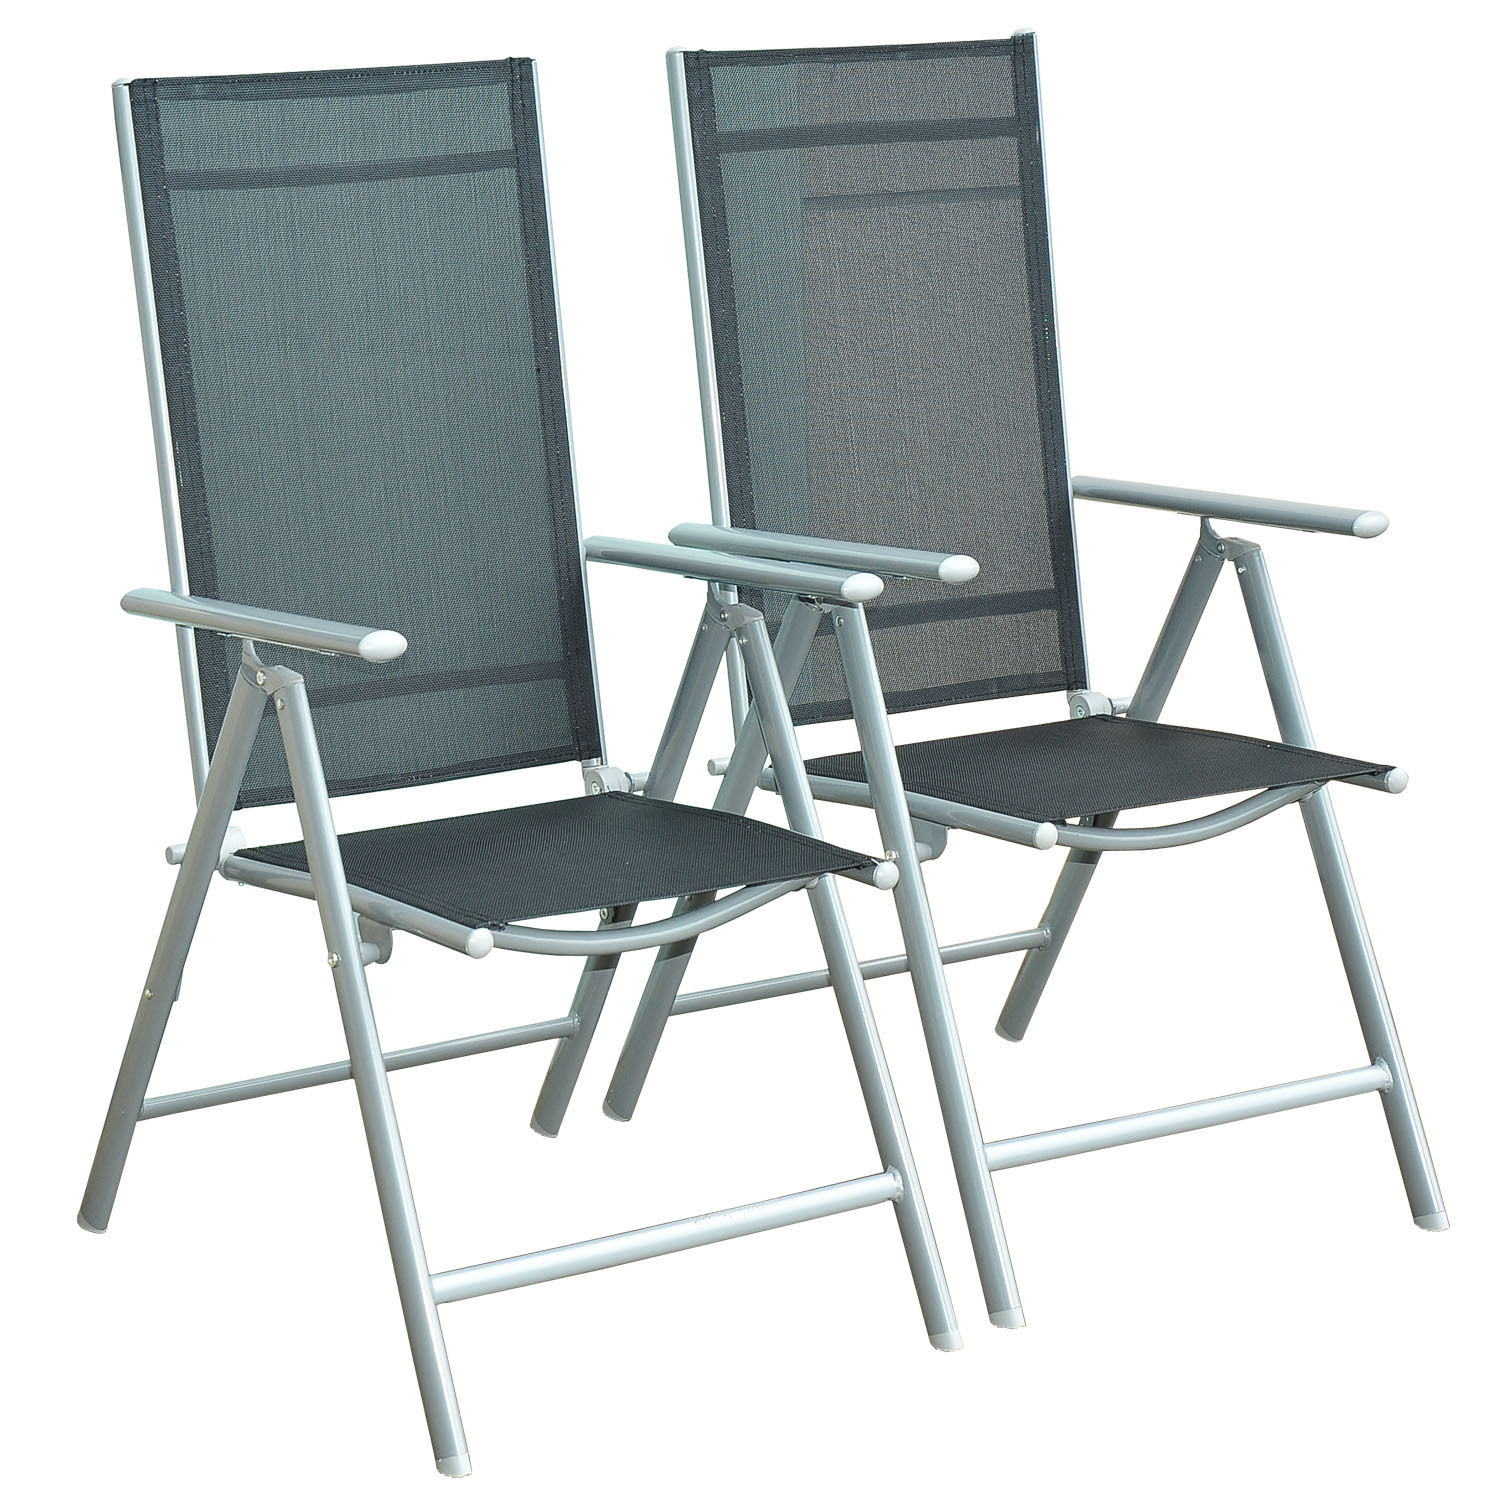 Garden Texteline Furniture Set Folding Chairs Square Table